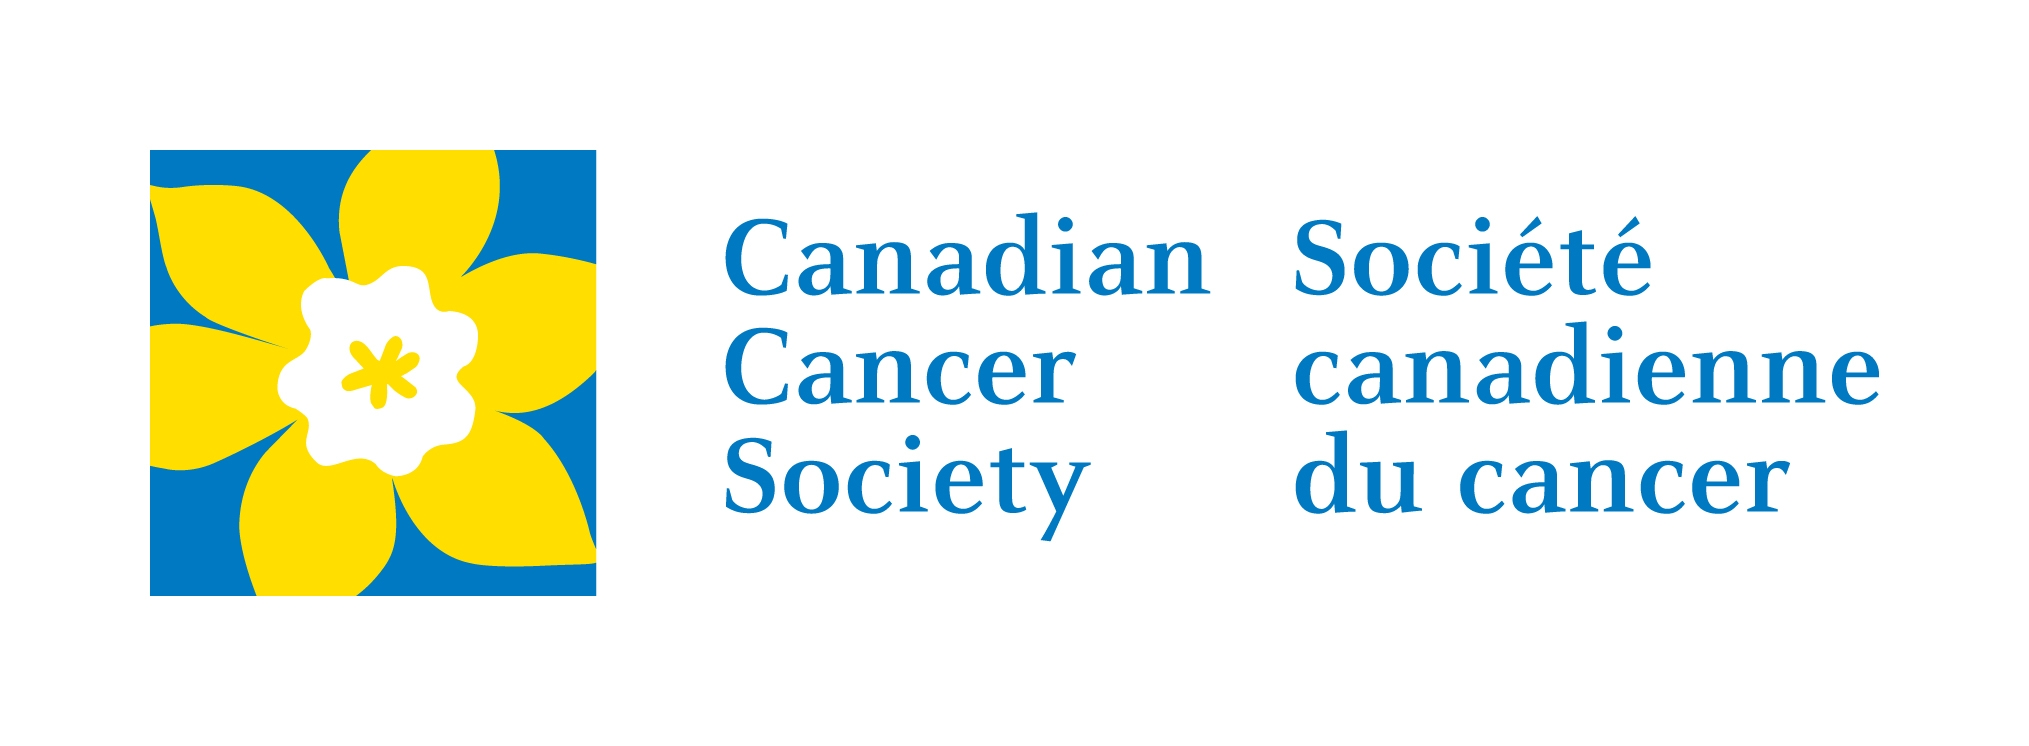 Canadian Cancer Society Accepts Vehicle Donations